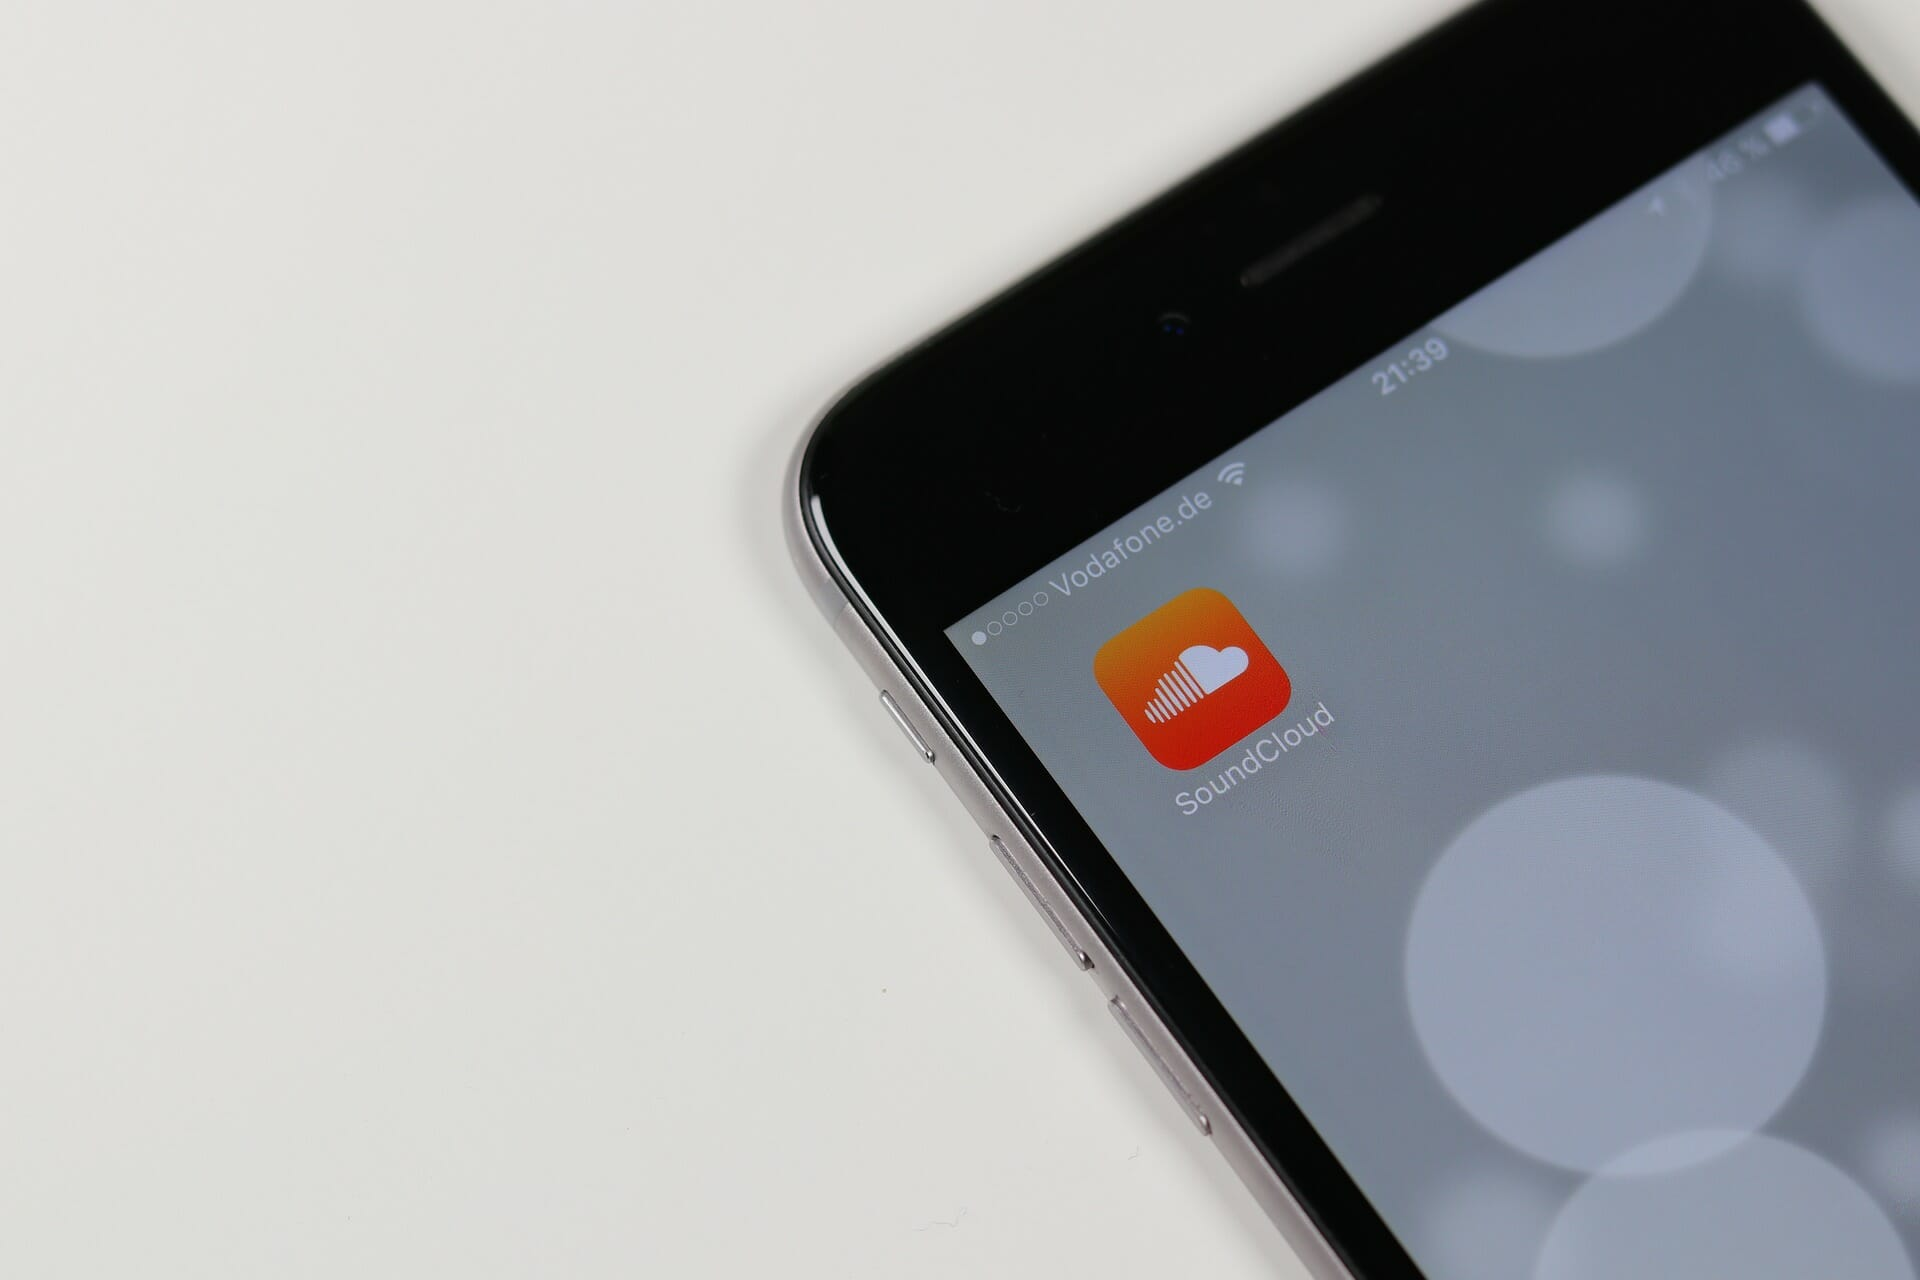 SoundCloud app on iPhone